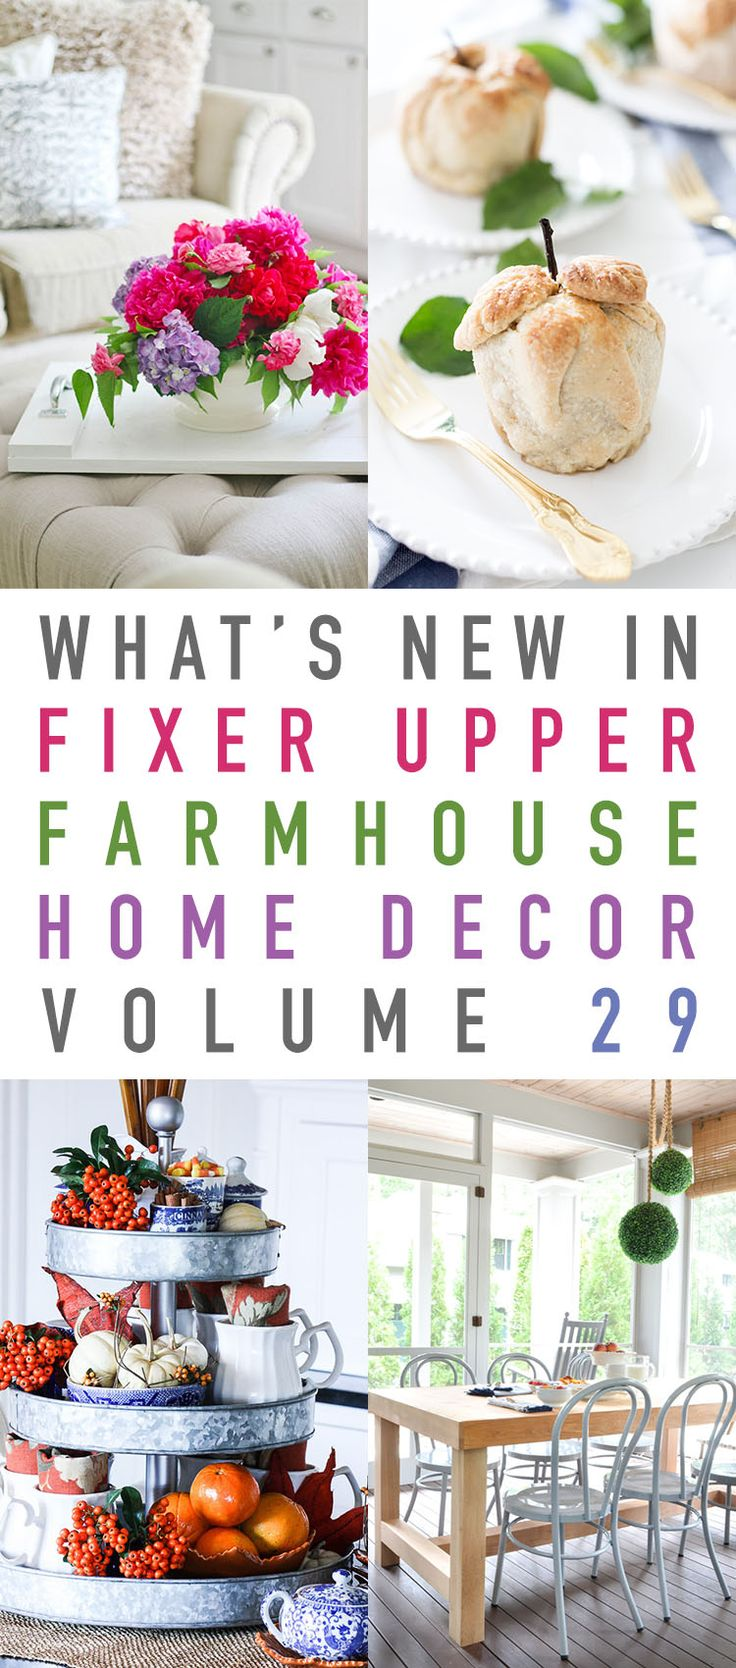 What's New In Fixer Upper Farmhouse Home Decor Volume 29 - The Cottage Market